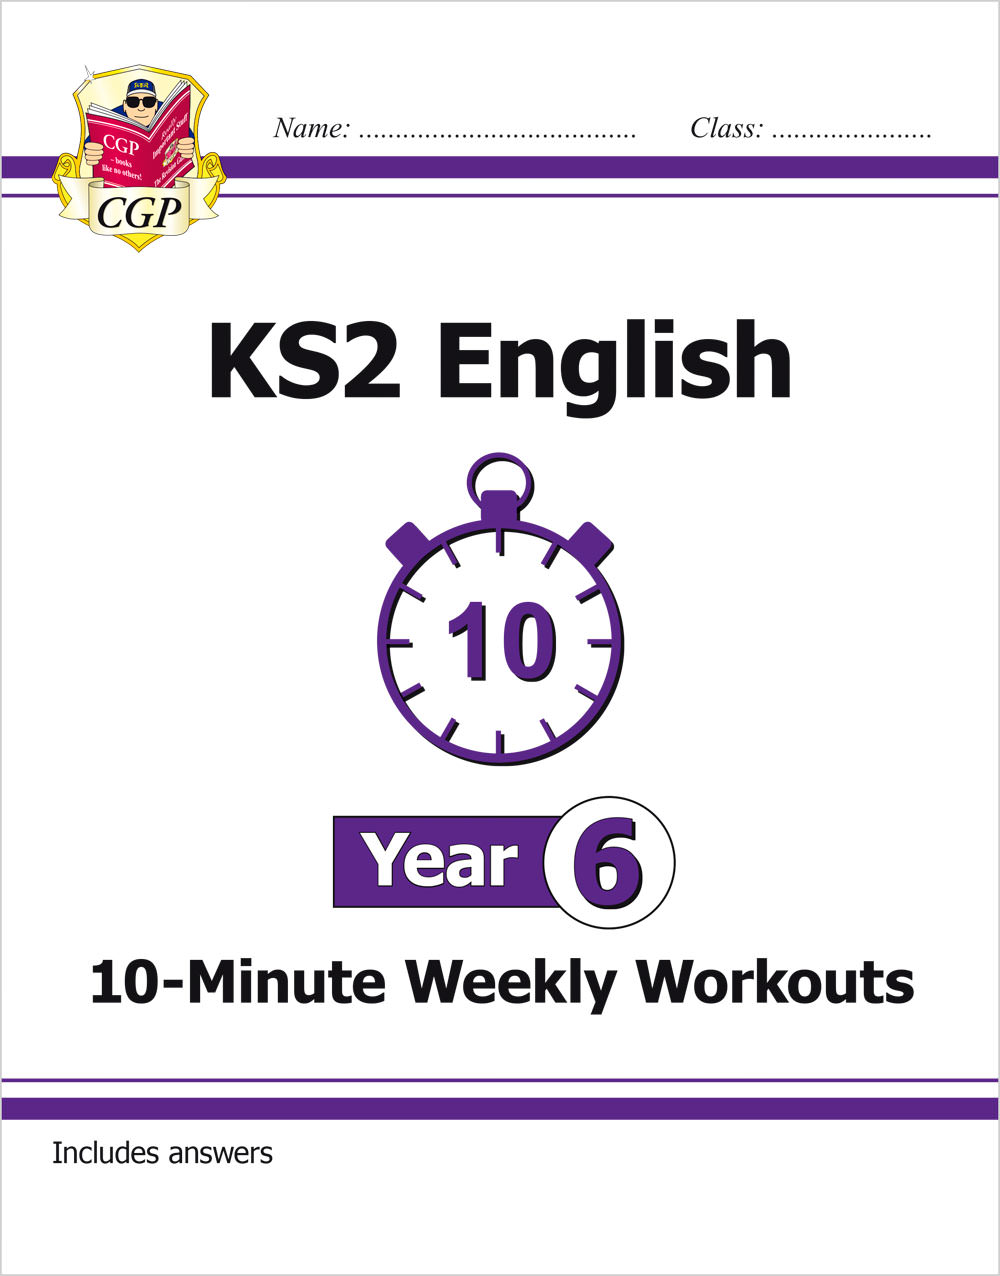 E6XW21 - KS2 English 10-Minute Weekly Workouts - Year 6